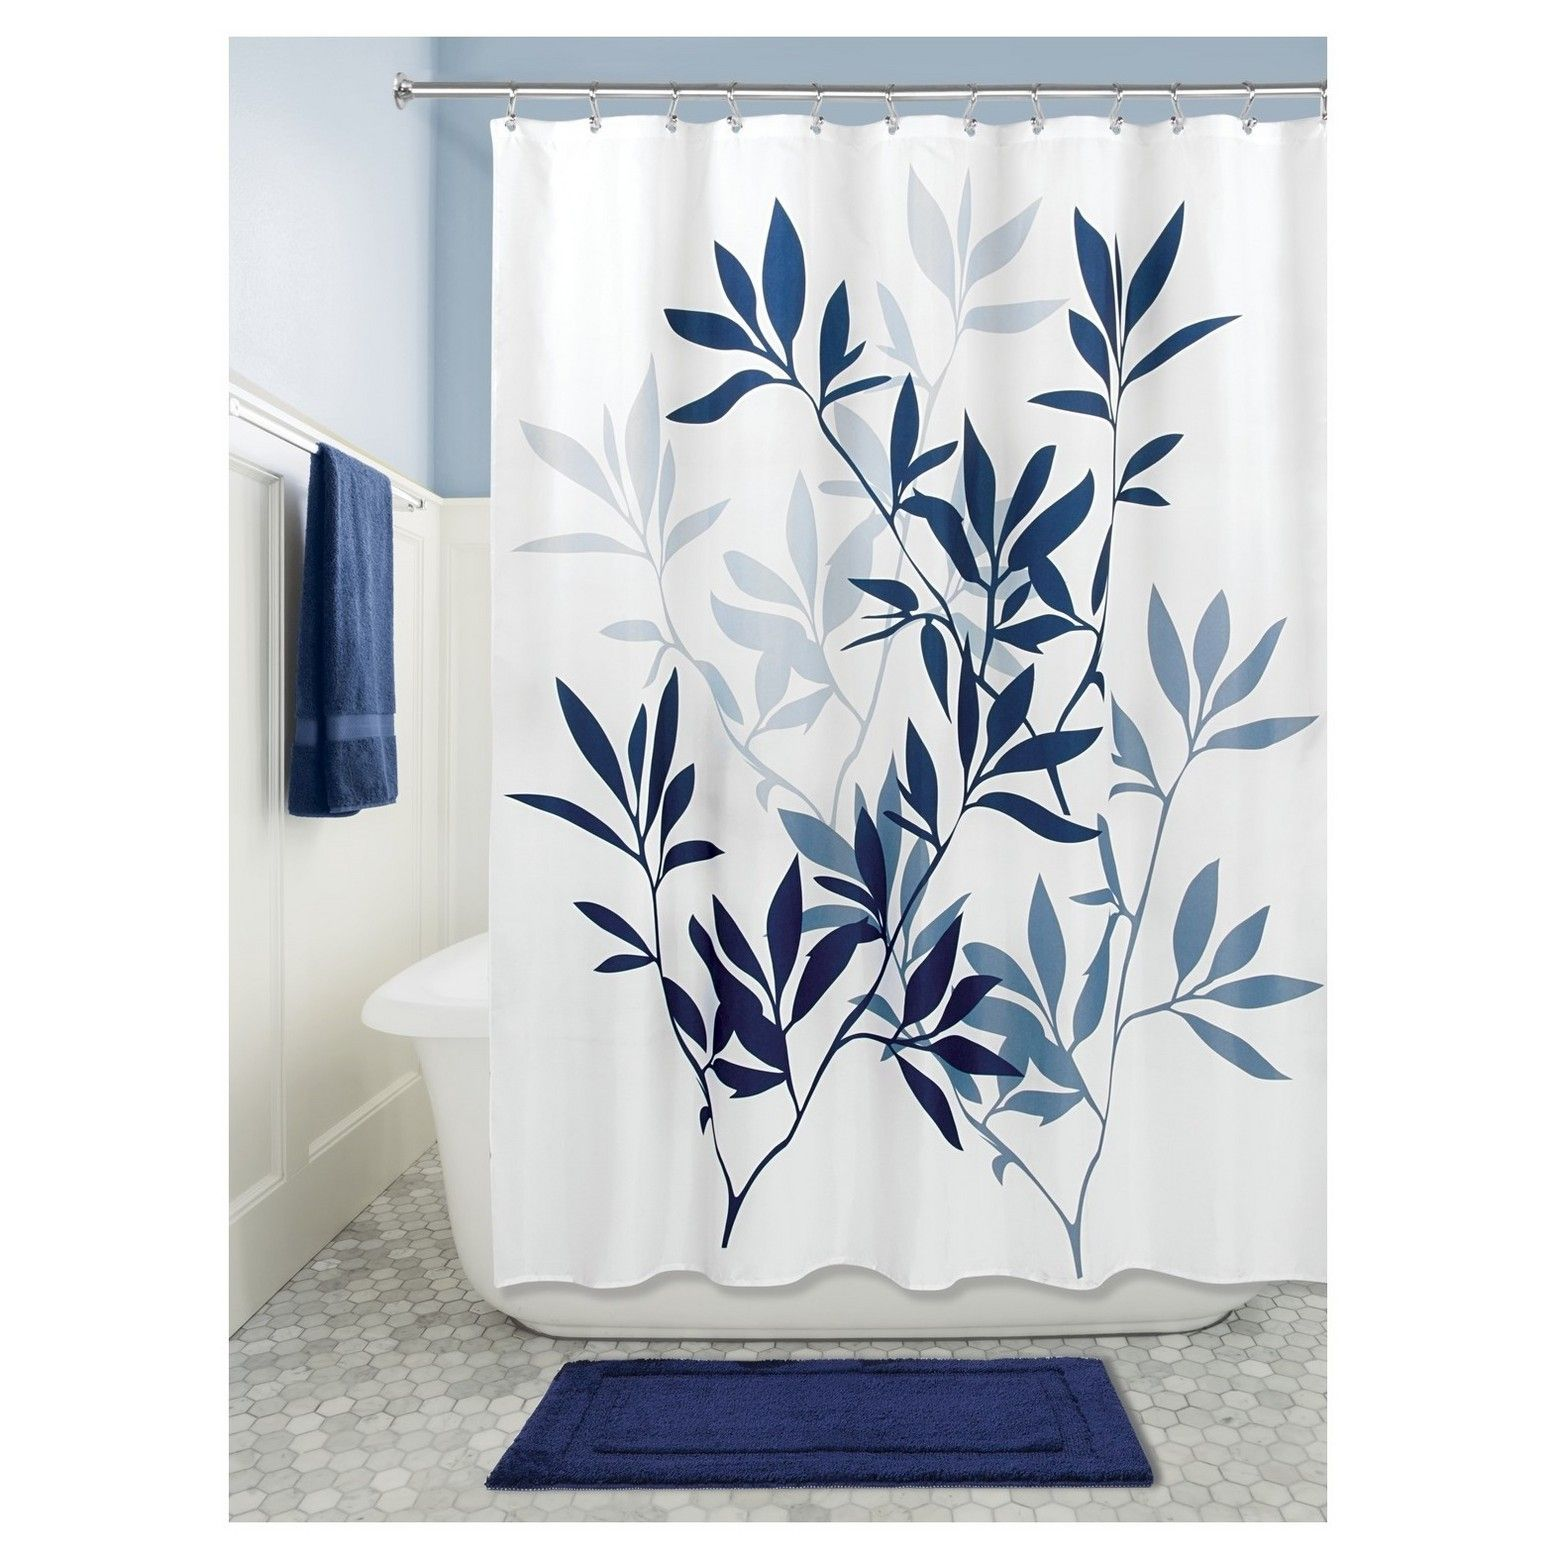 Leaves Shower Curtain Idesign Fabric Shower Curtains White Shower Curtain Shower Curtain Polyester